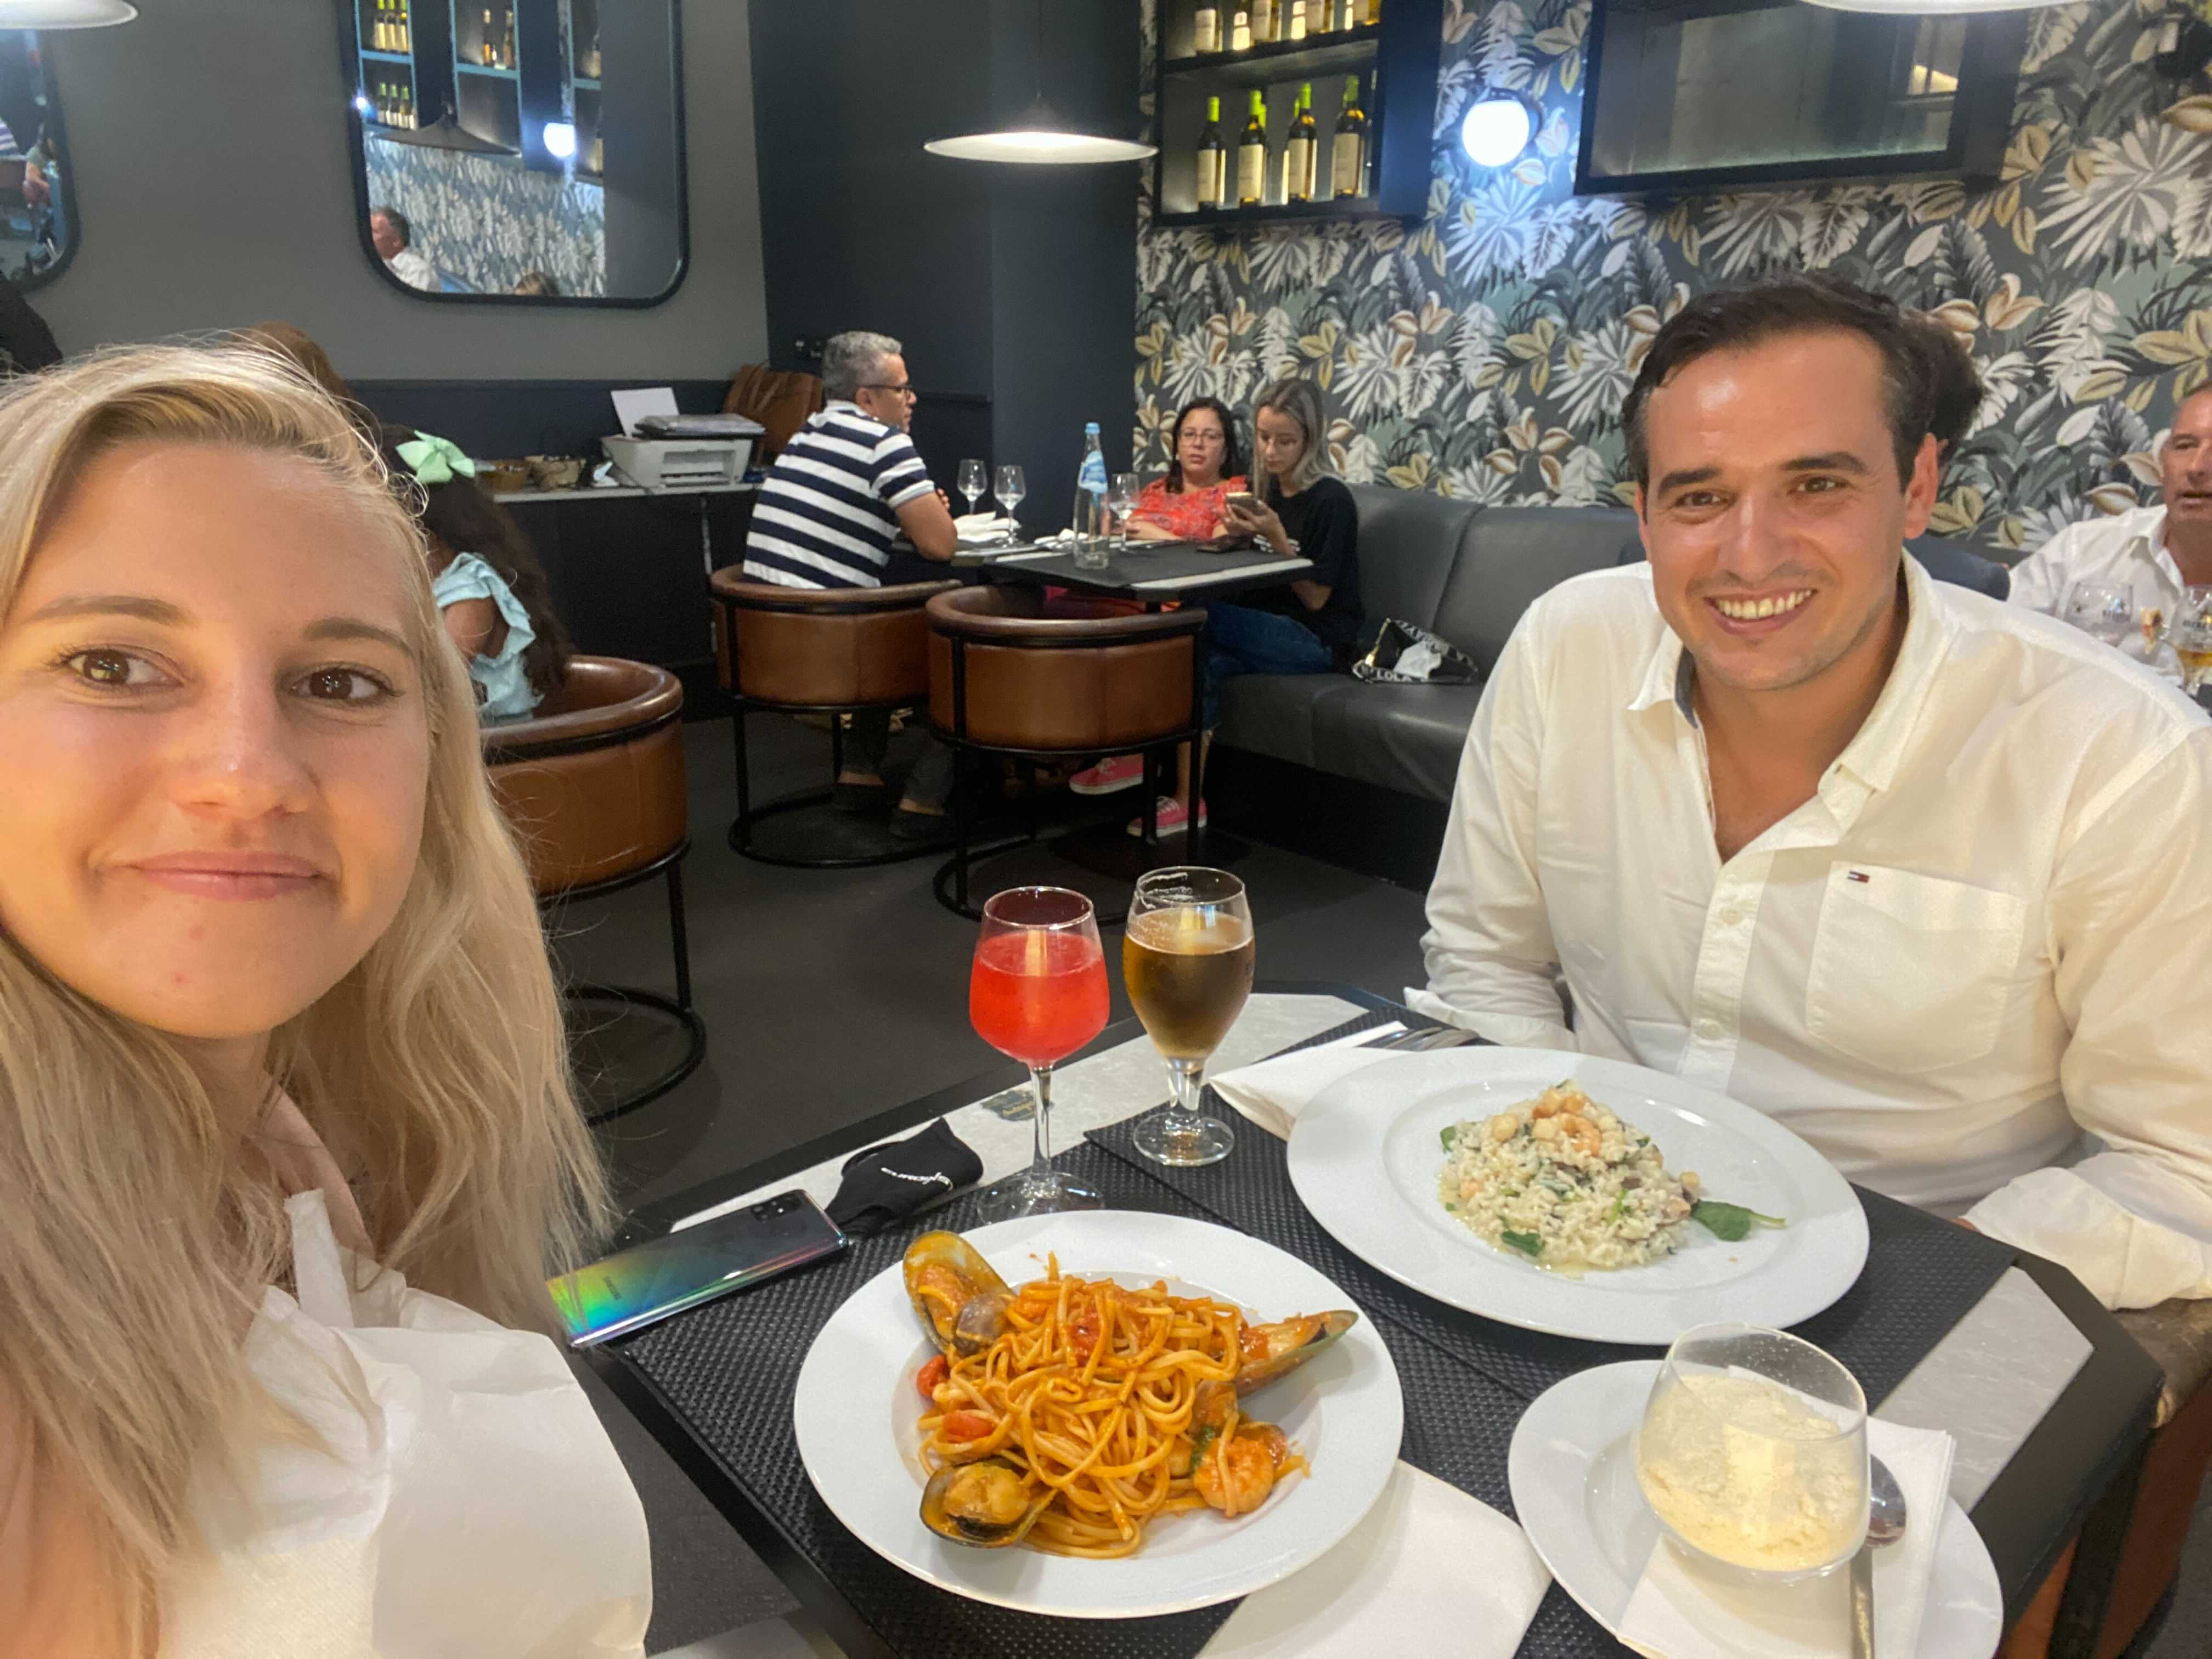 Tjasa met up with Pedro Silvestre